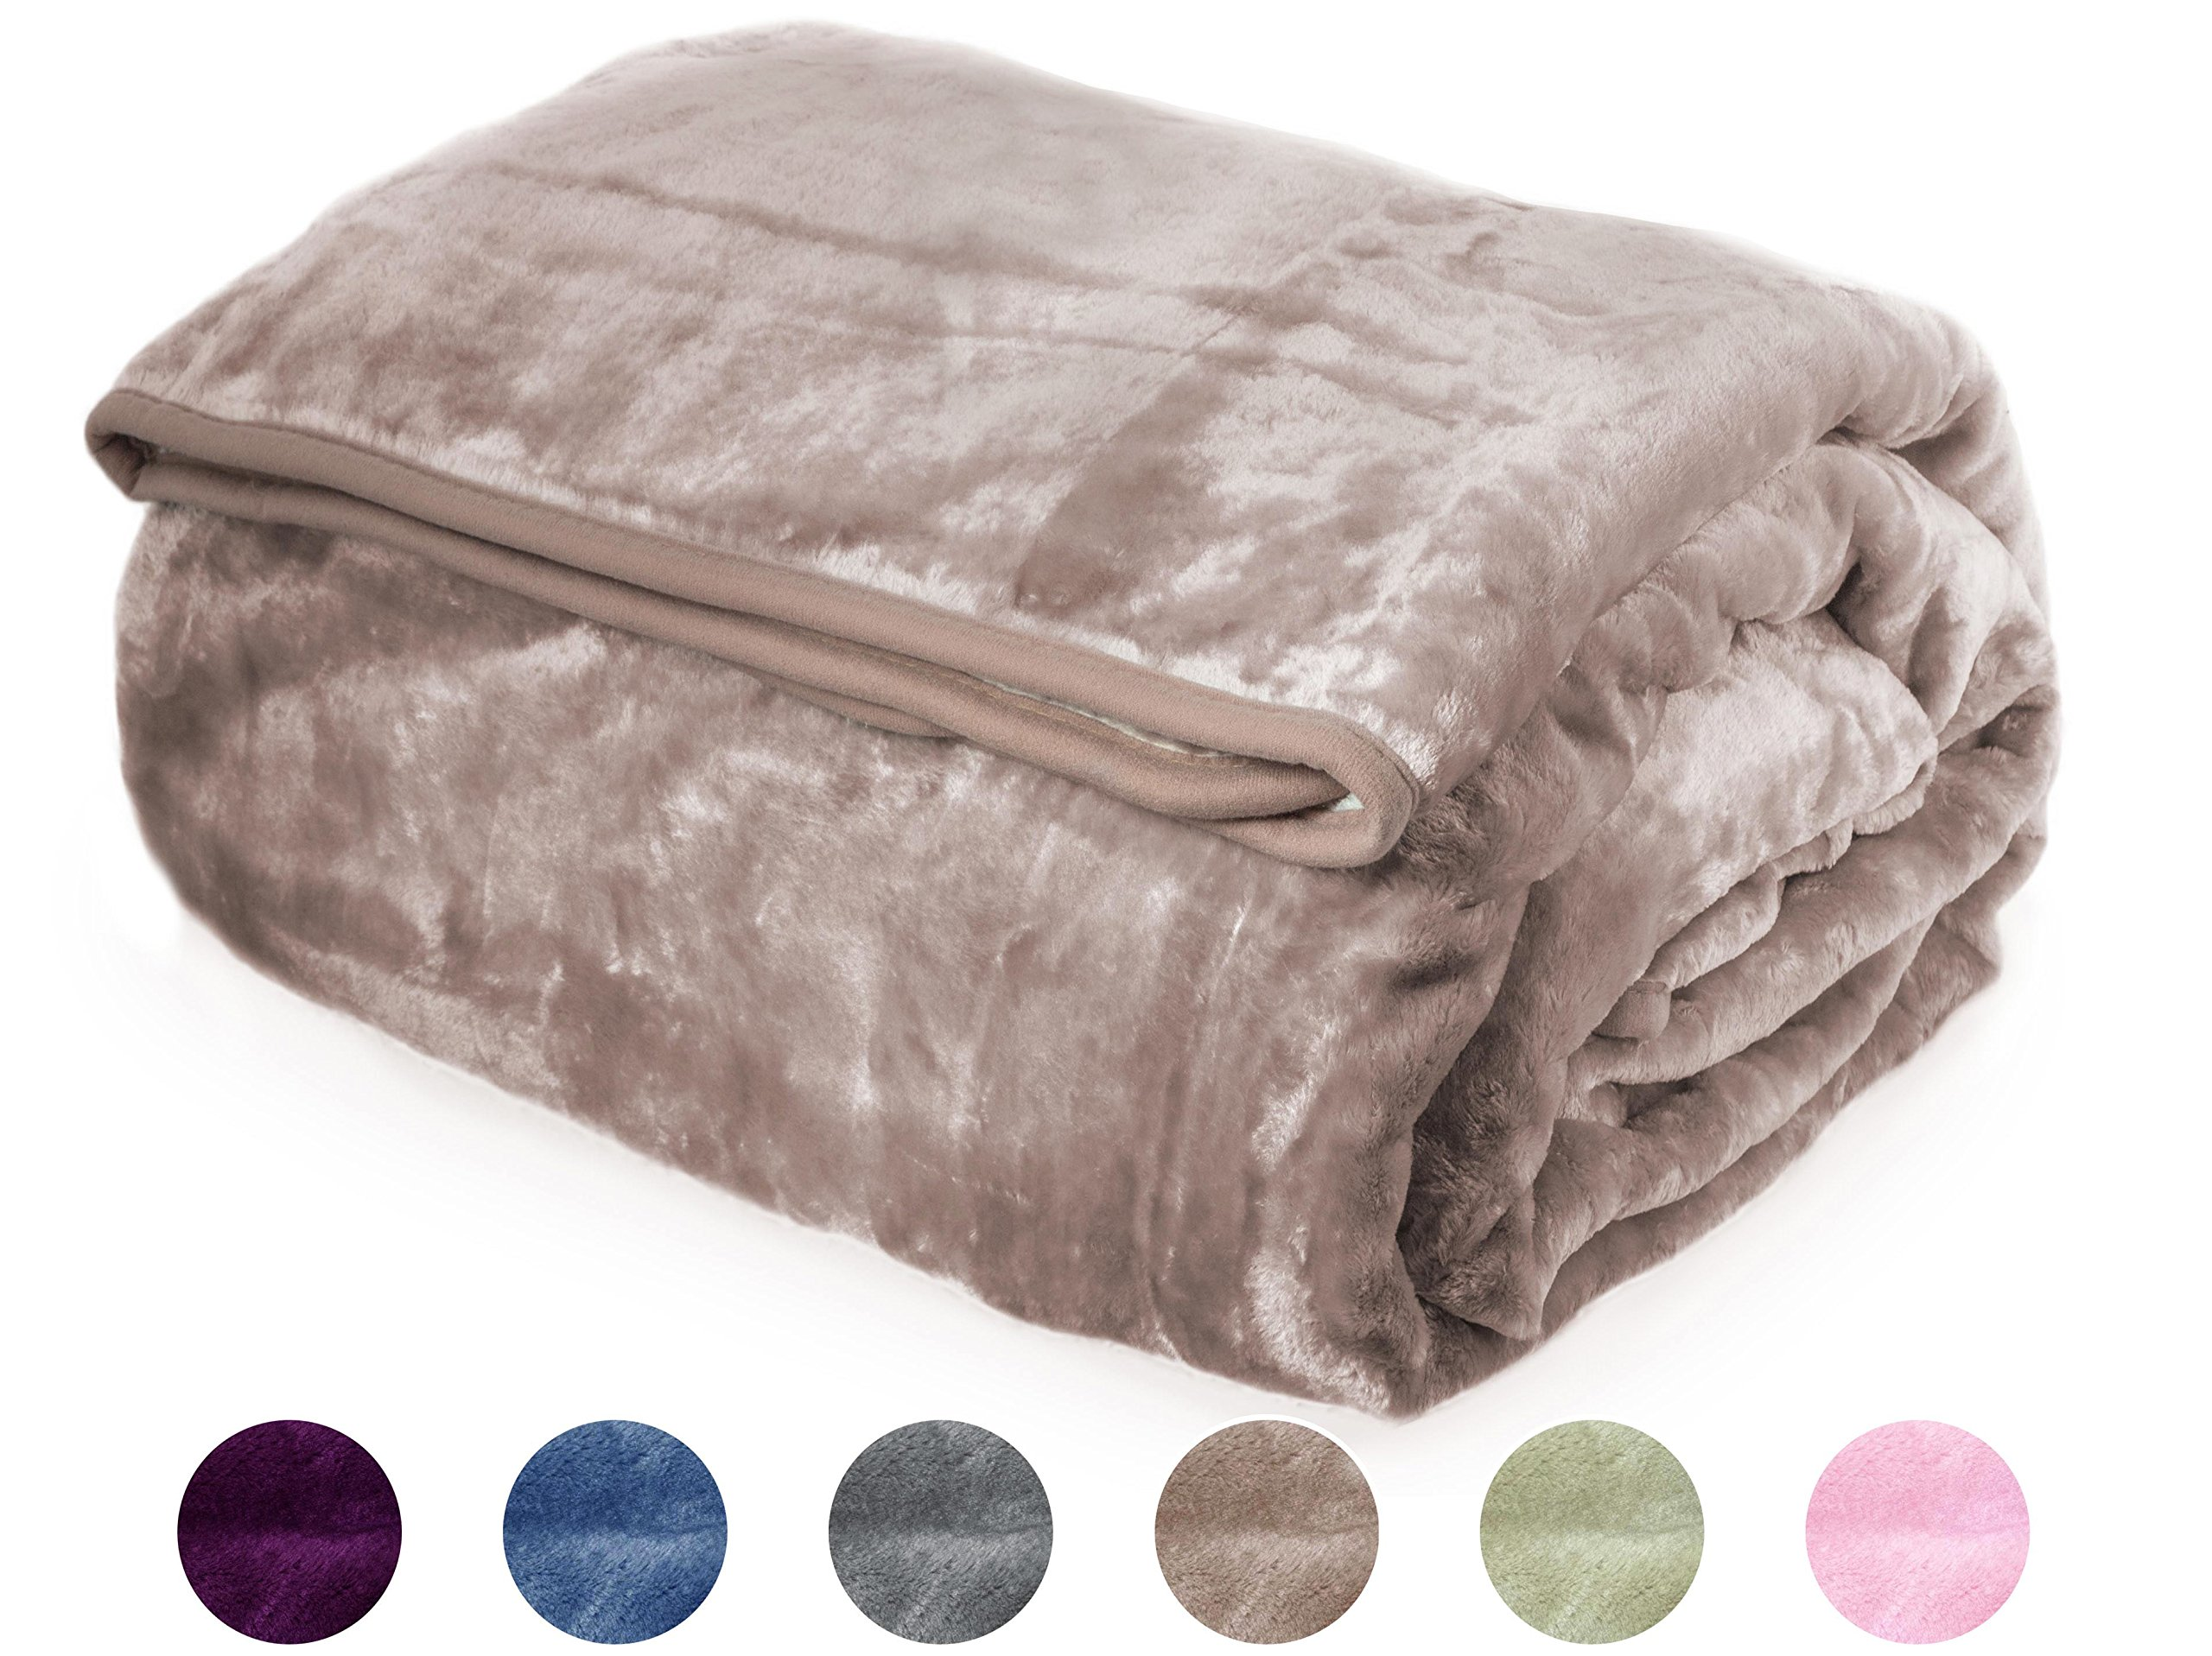 "Crover Archangel Ultra Silky Soft Heavy Duty Quality Korean Mink Reversible Cloud Solid Blanket Queen SIze 83""x94"", Cocoa Brown"